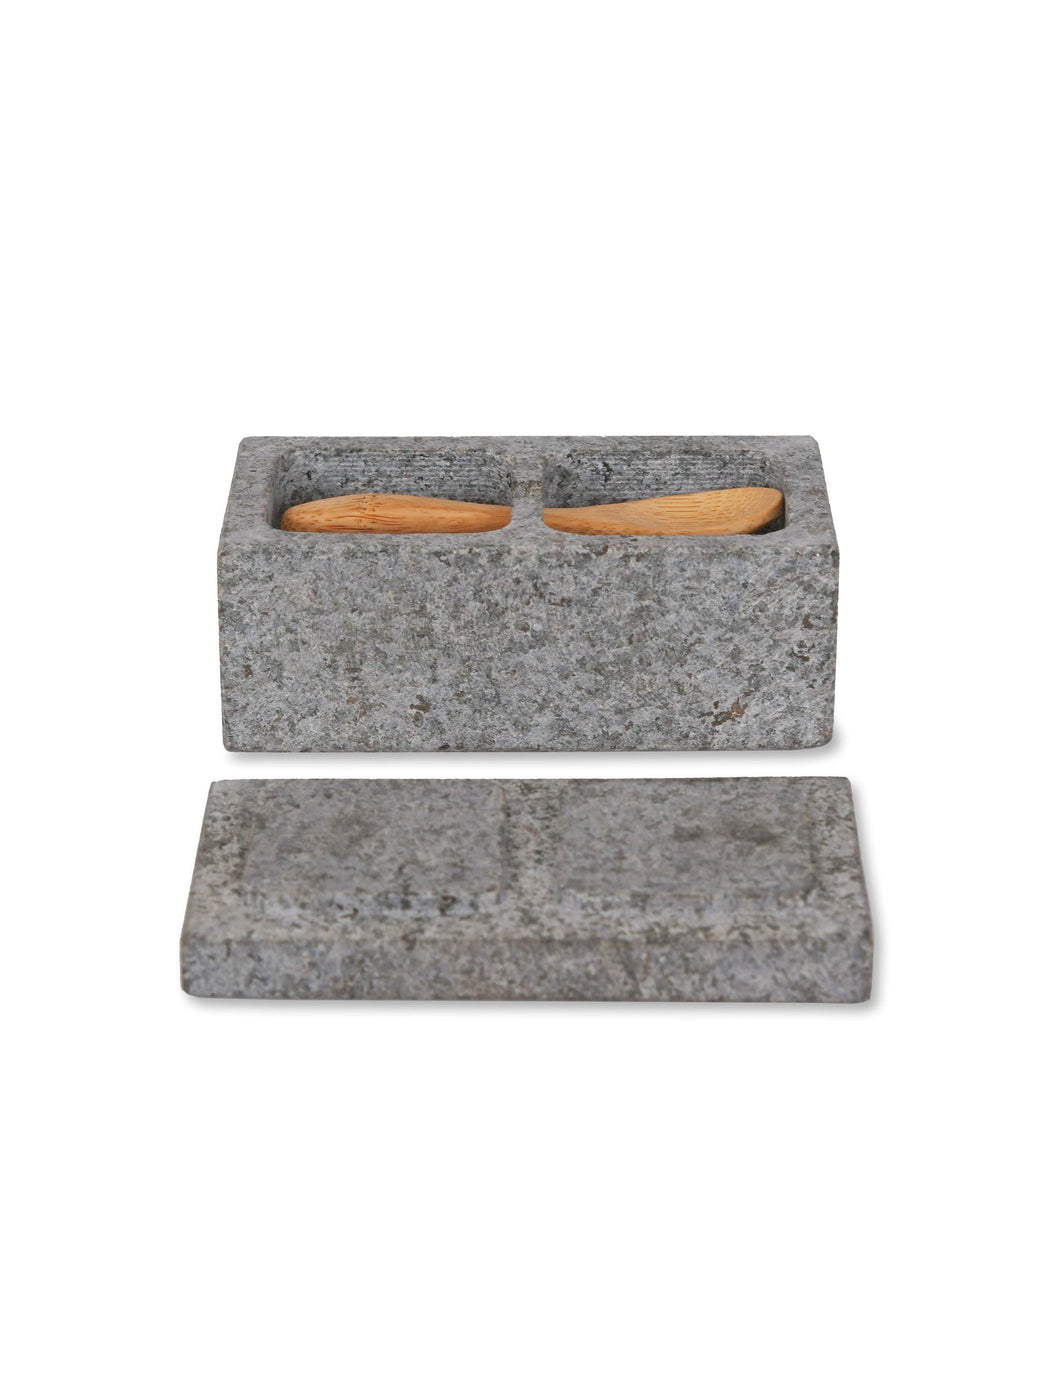 Salt and Pepper Pinch Pot - Granite